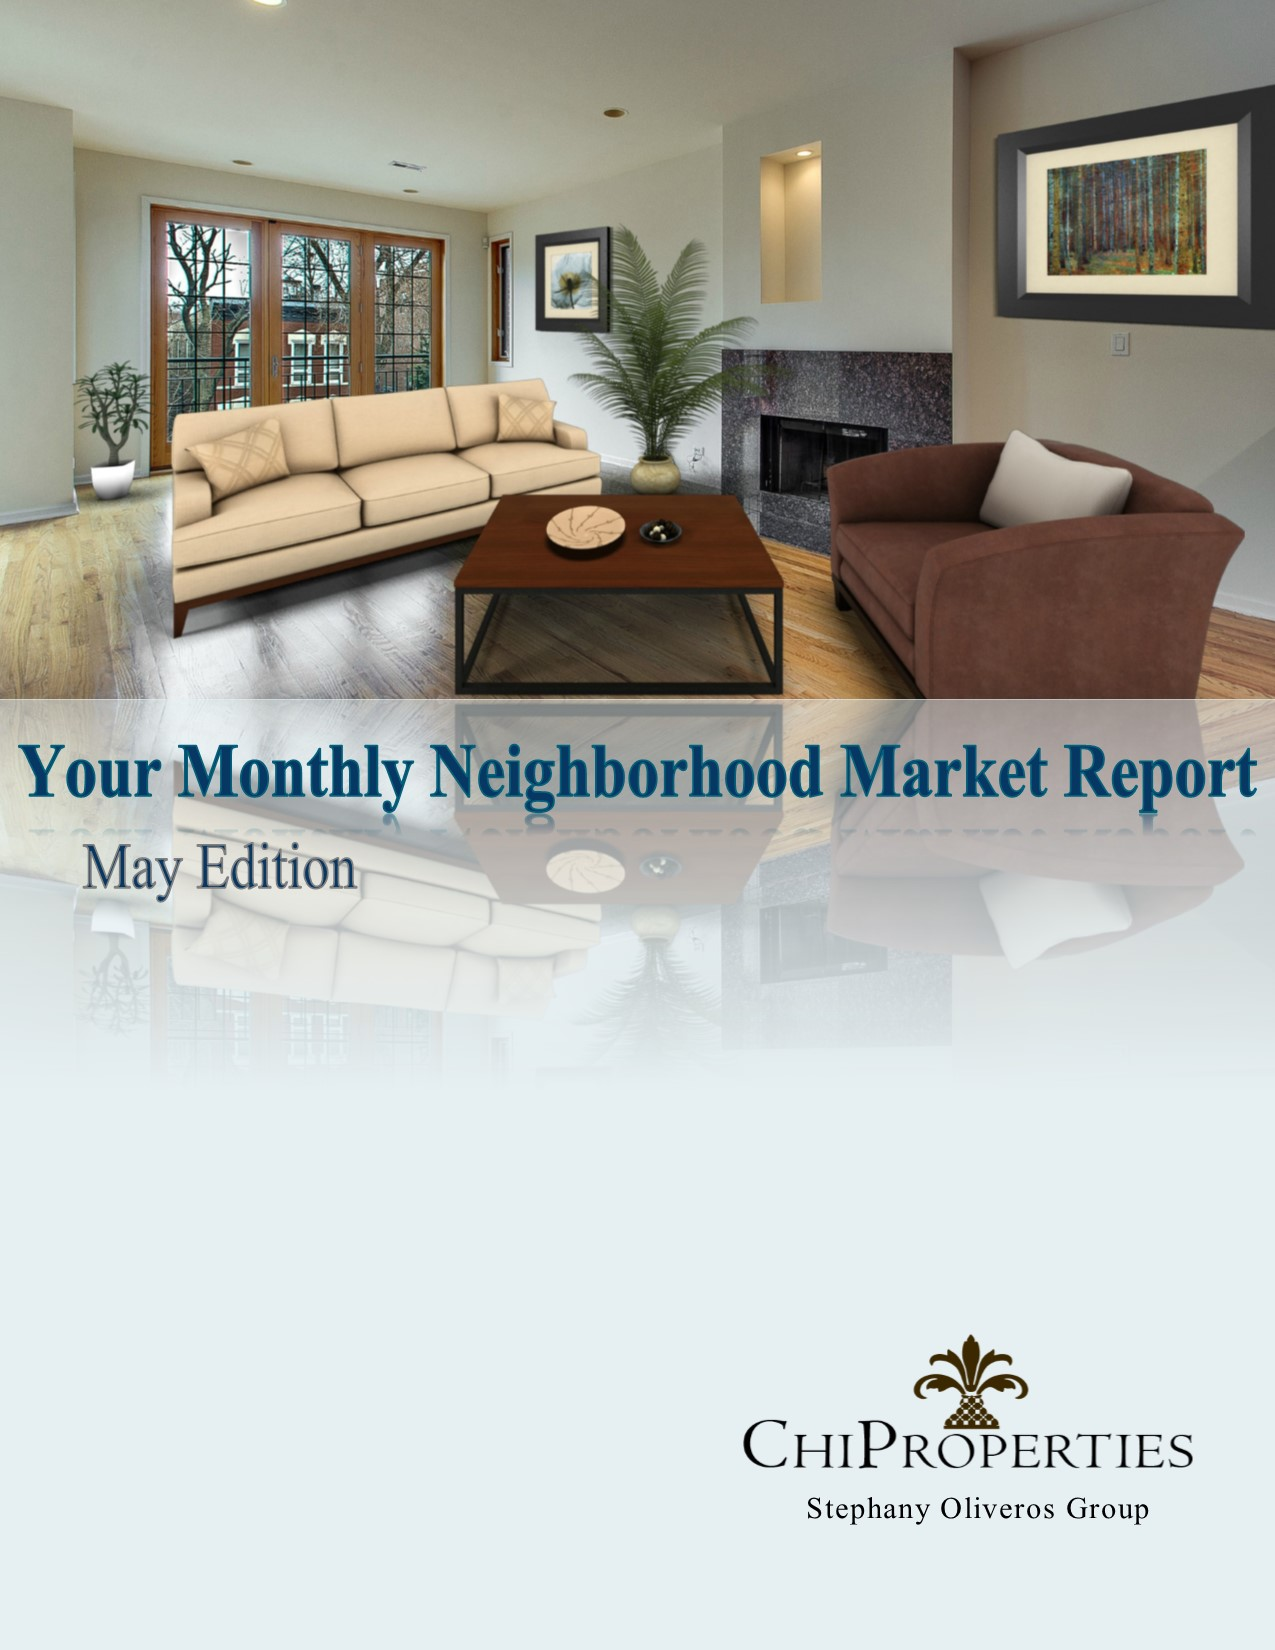 Your Monthly Neighborhood Market Report: May Edition